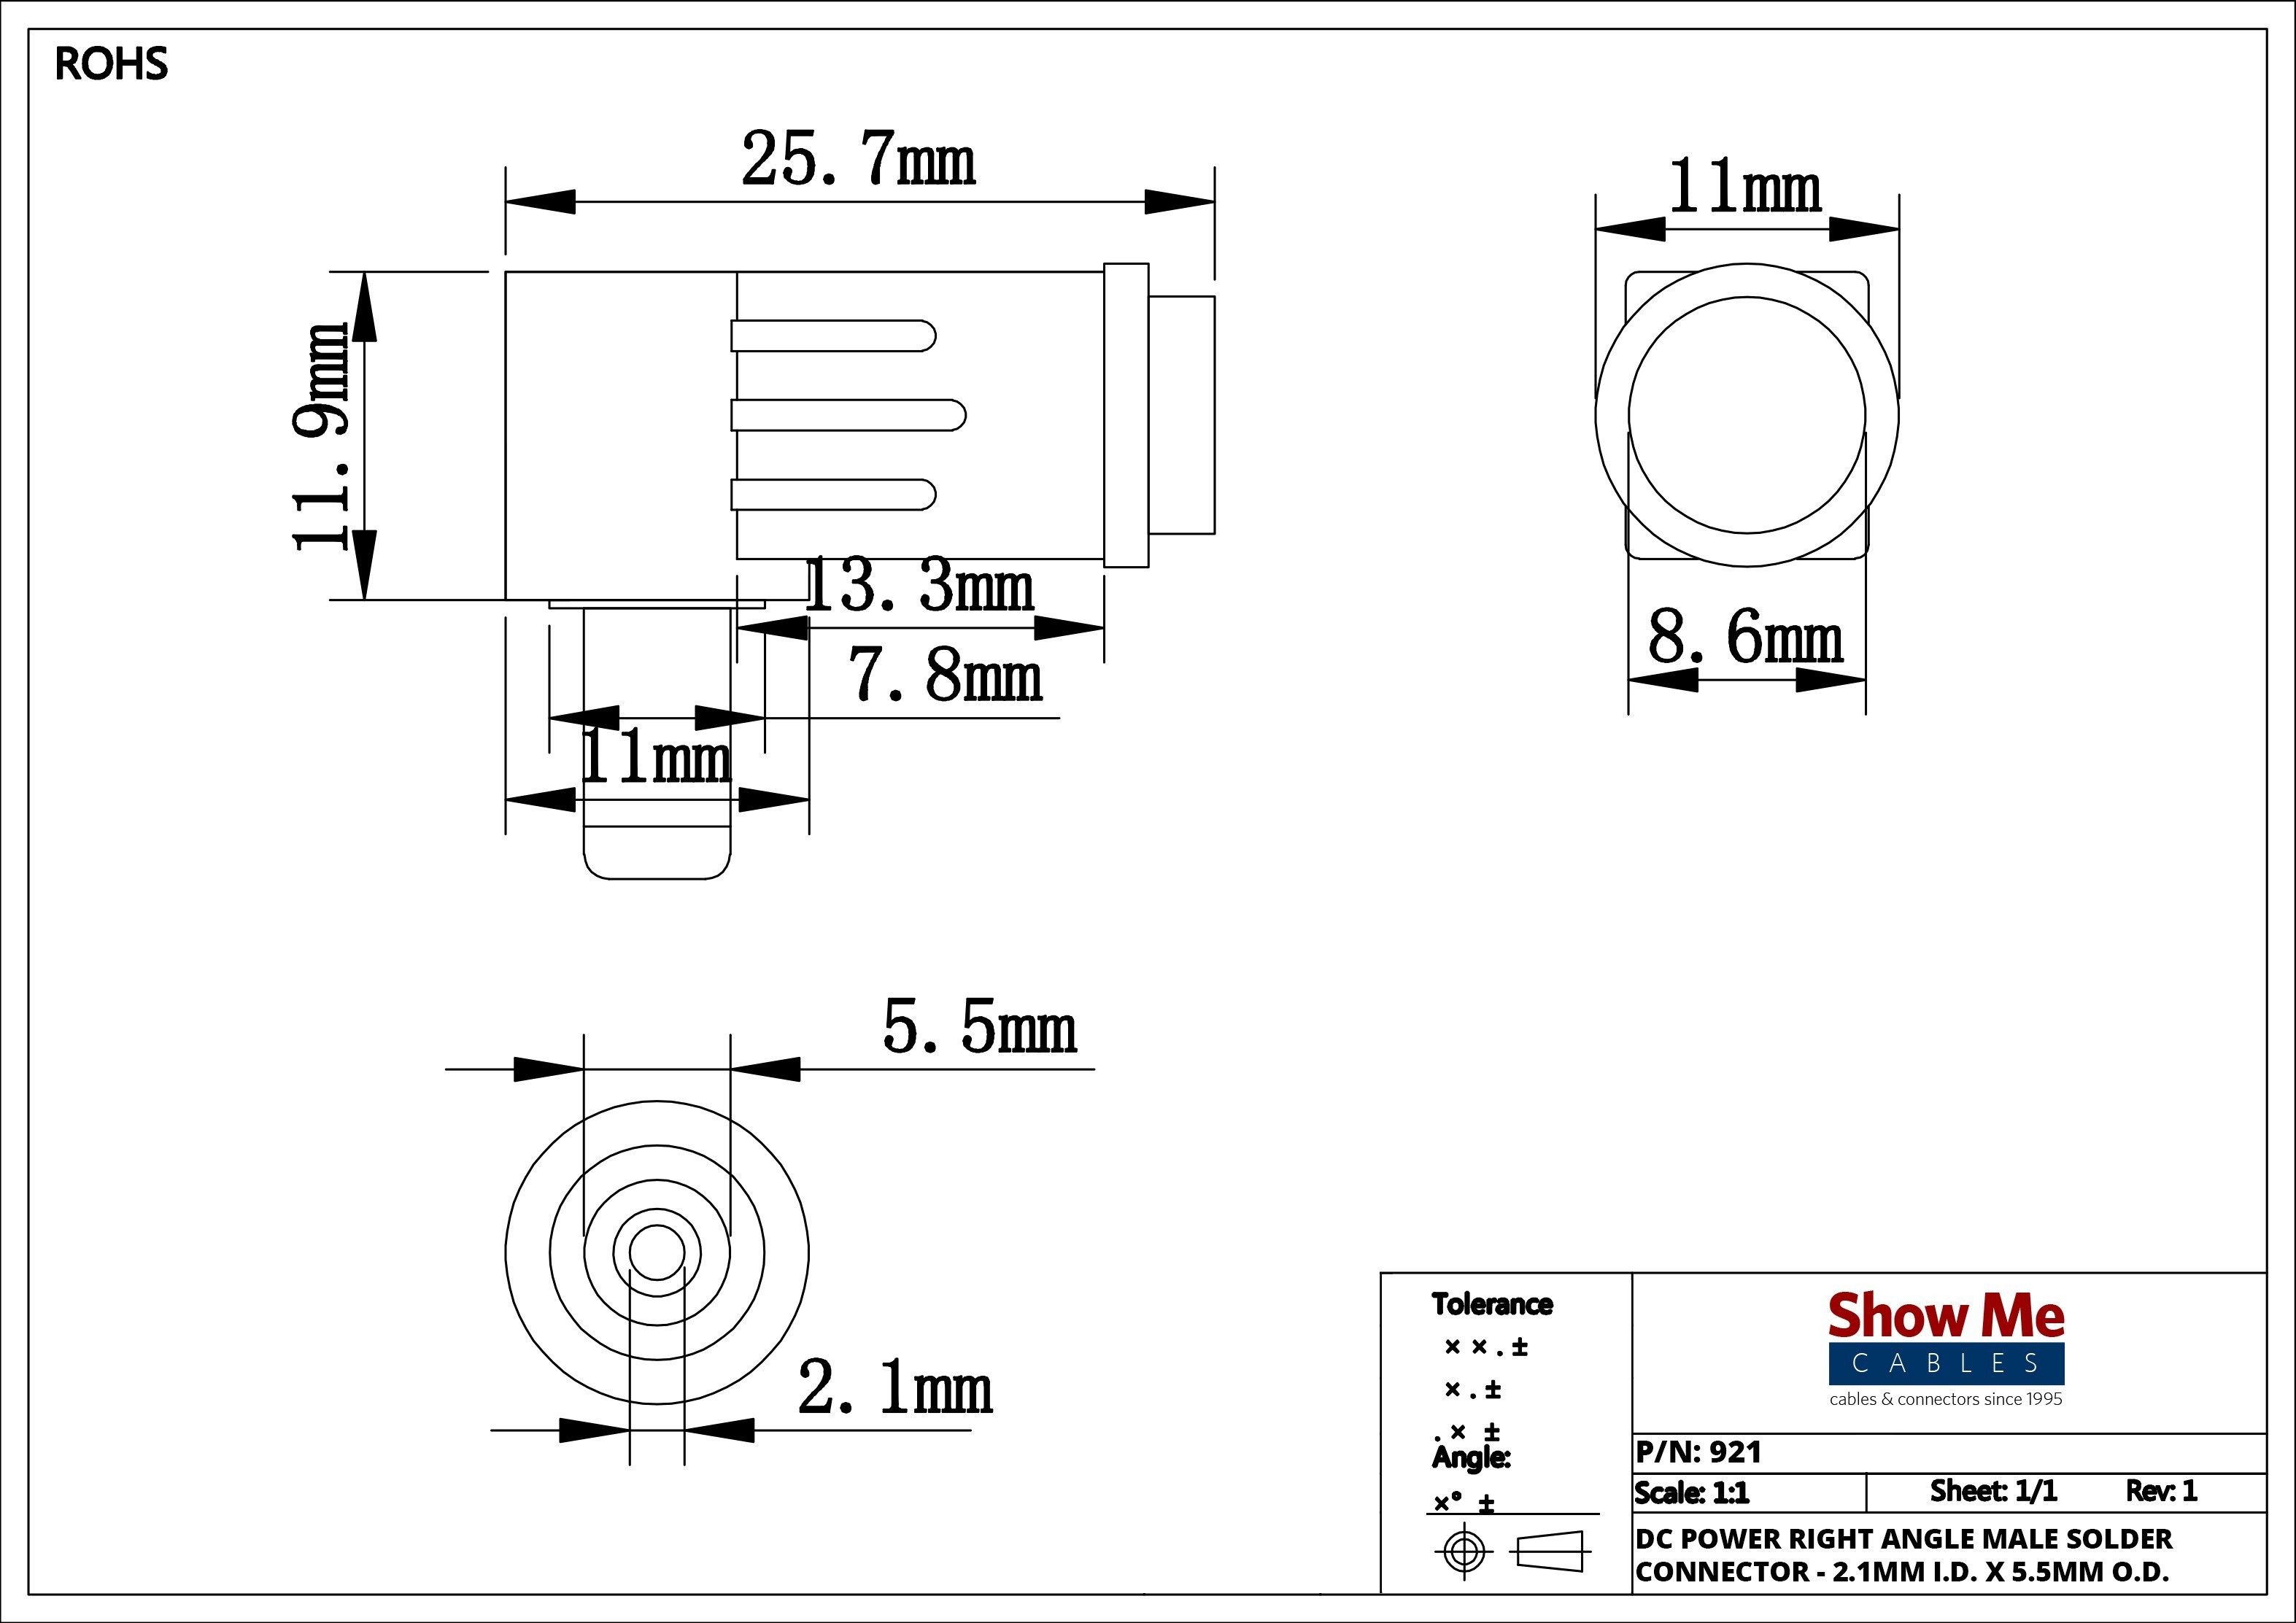 Unique 110 Punch Down Block Wiring Diagram Wiring Diagram Image Bnc Wiring  Diagram 110 Punch Block Wiring Diagram